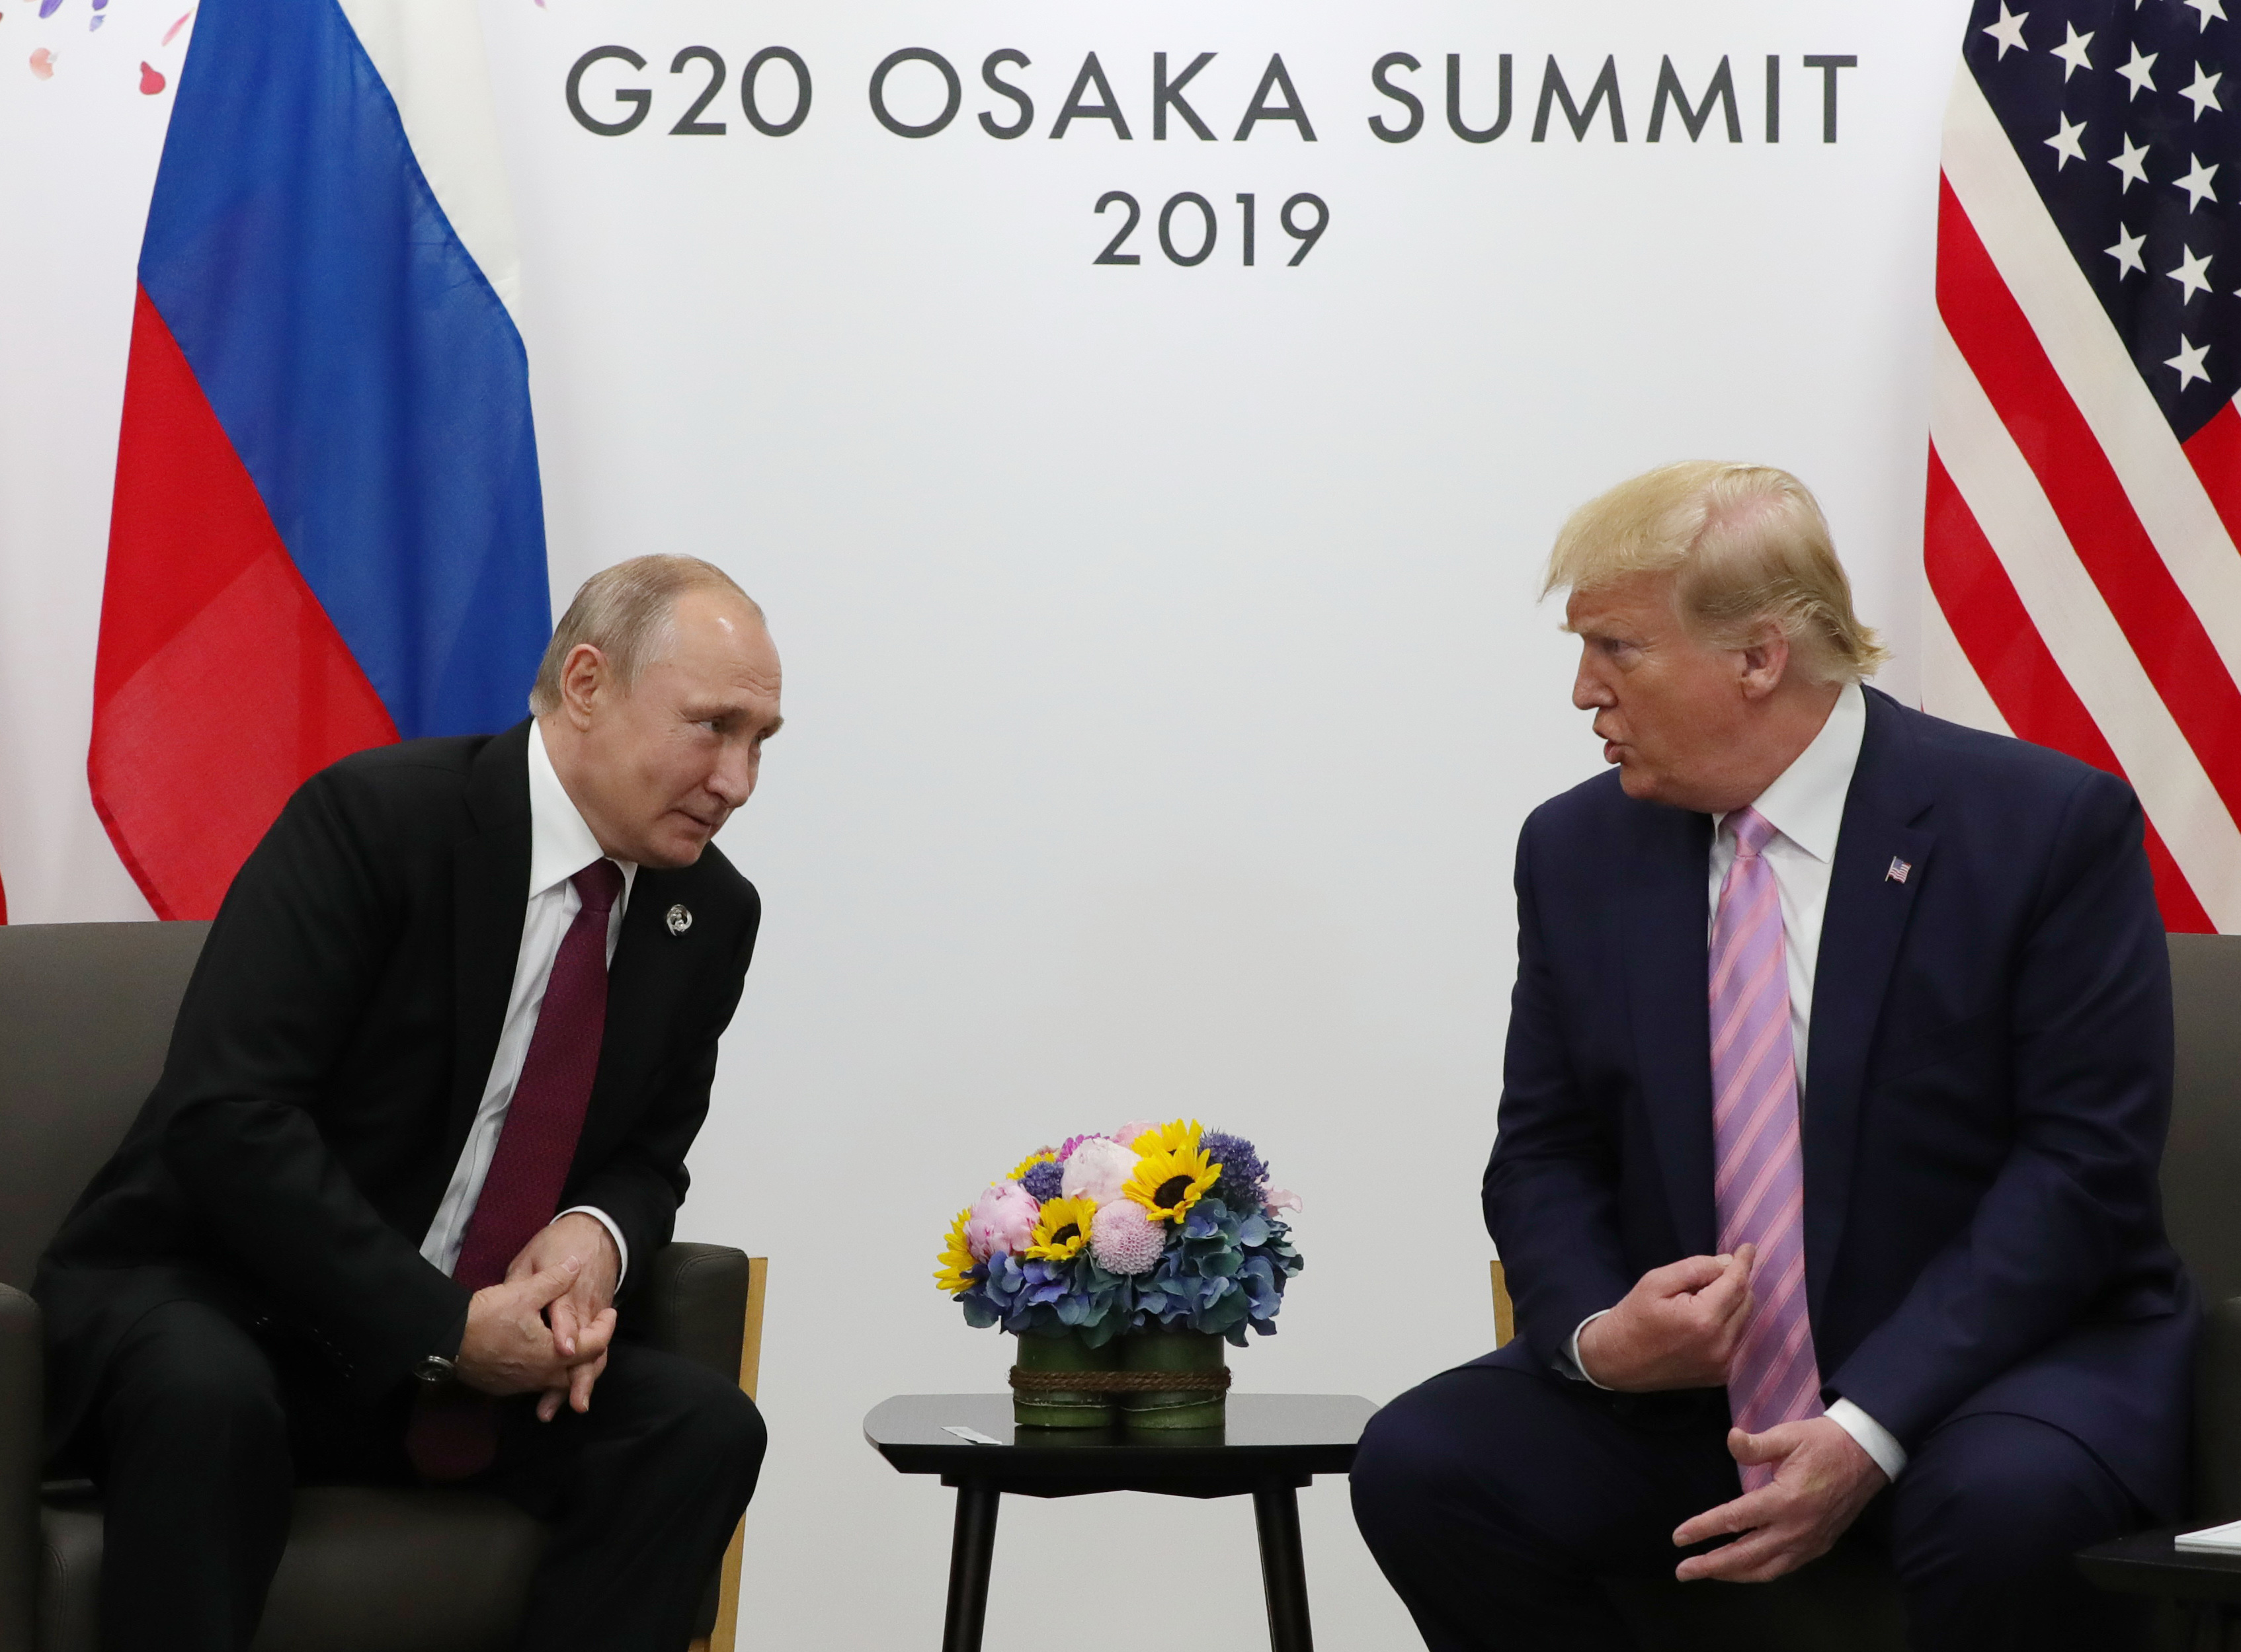 Russian President Vladimir Putin and US President Donald Trump hold a meeting on the sidelines of the G20 summit in Osaka on June 28, 2019. (MIKHAIL KLIMENTYEV/AFP/Getty Images)